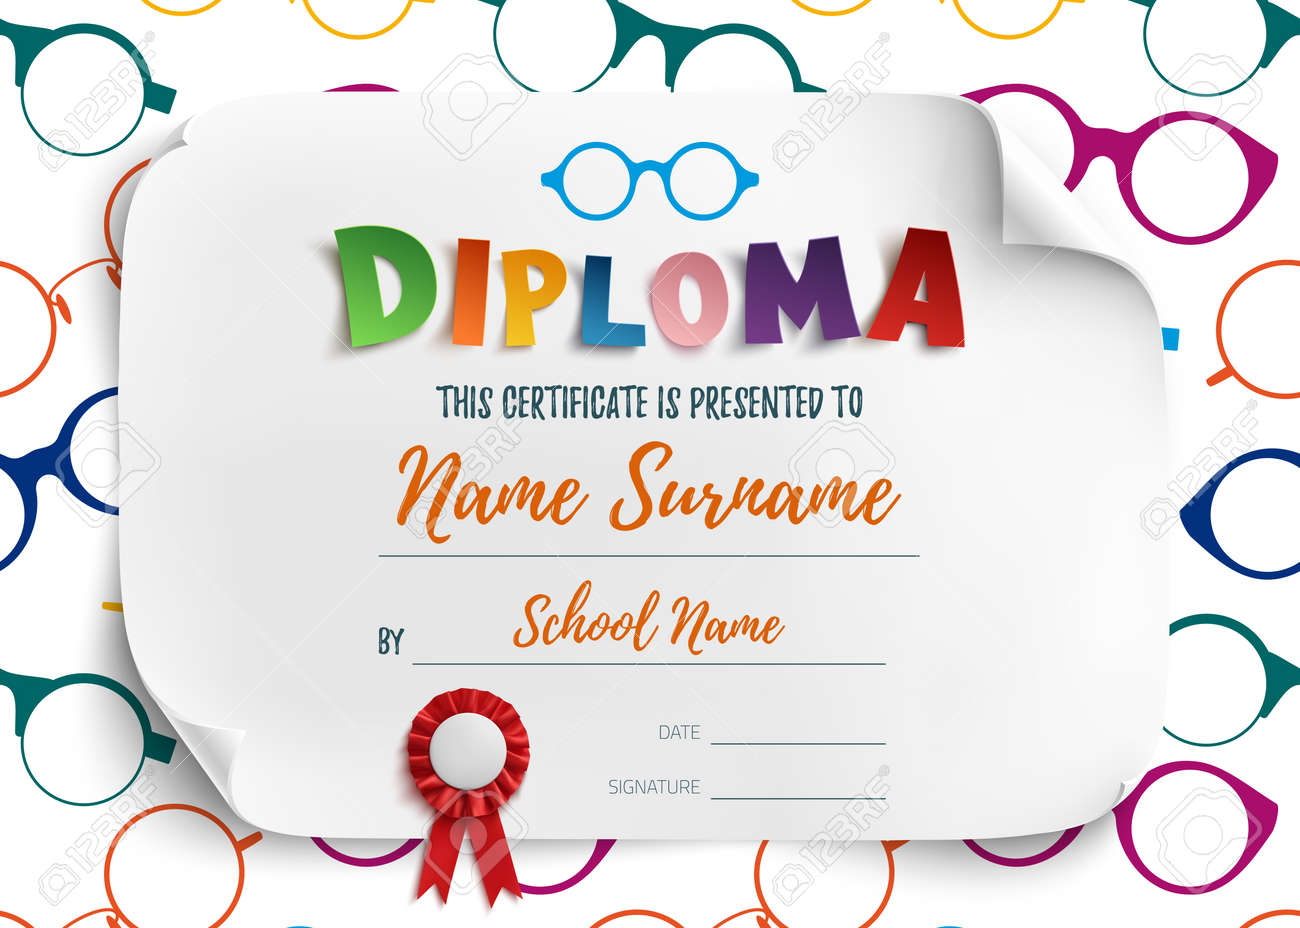 Kids certificate templates bidding proposal template beautiful reading certificate template ideas resume ideas 61125498 diploma template for kids school preschool playschool certificate yelopaper Images